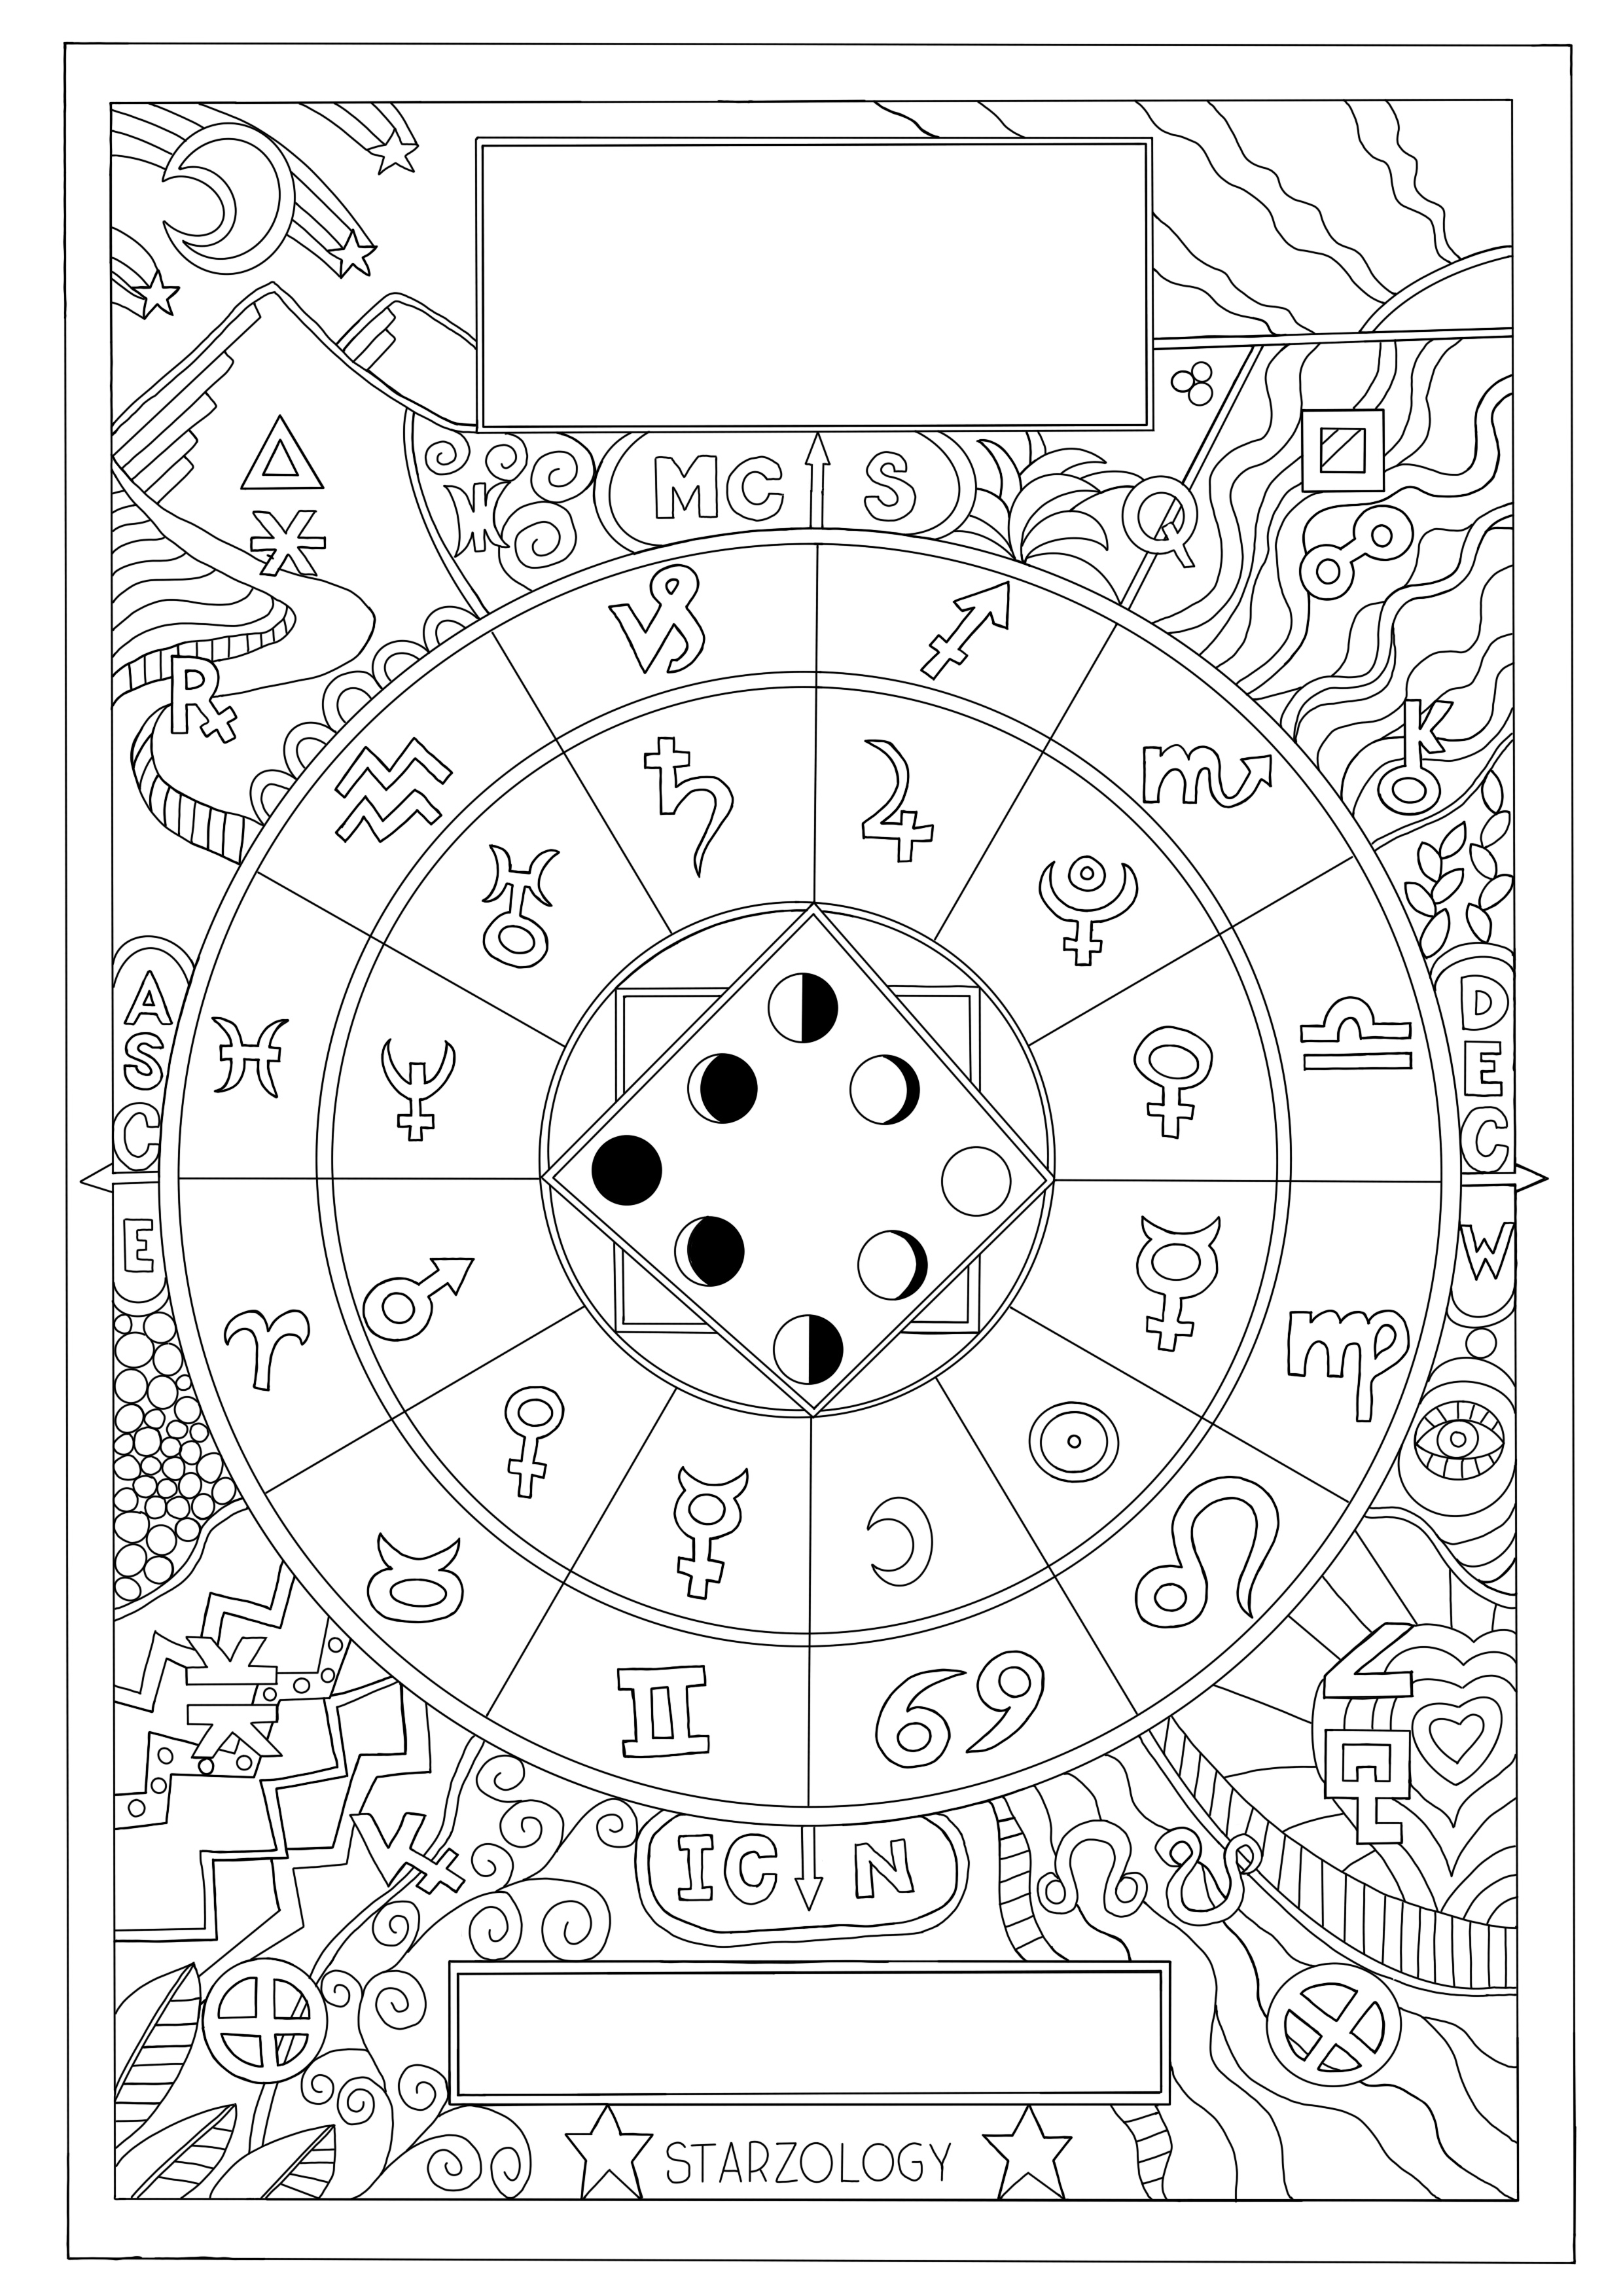 Astrology Art – Colouring-In for Grown Ups